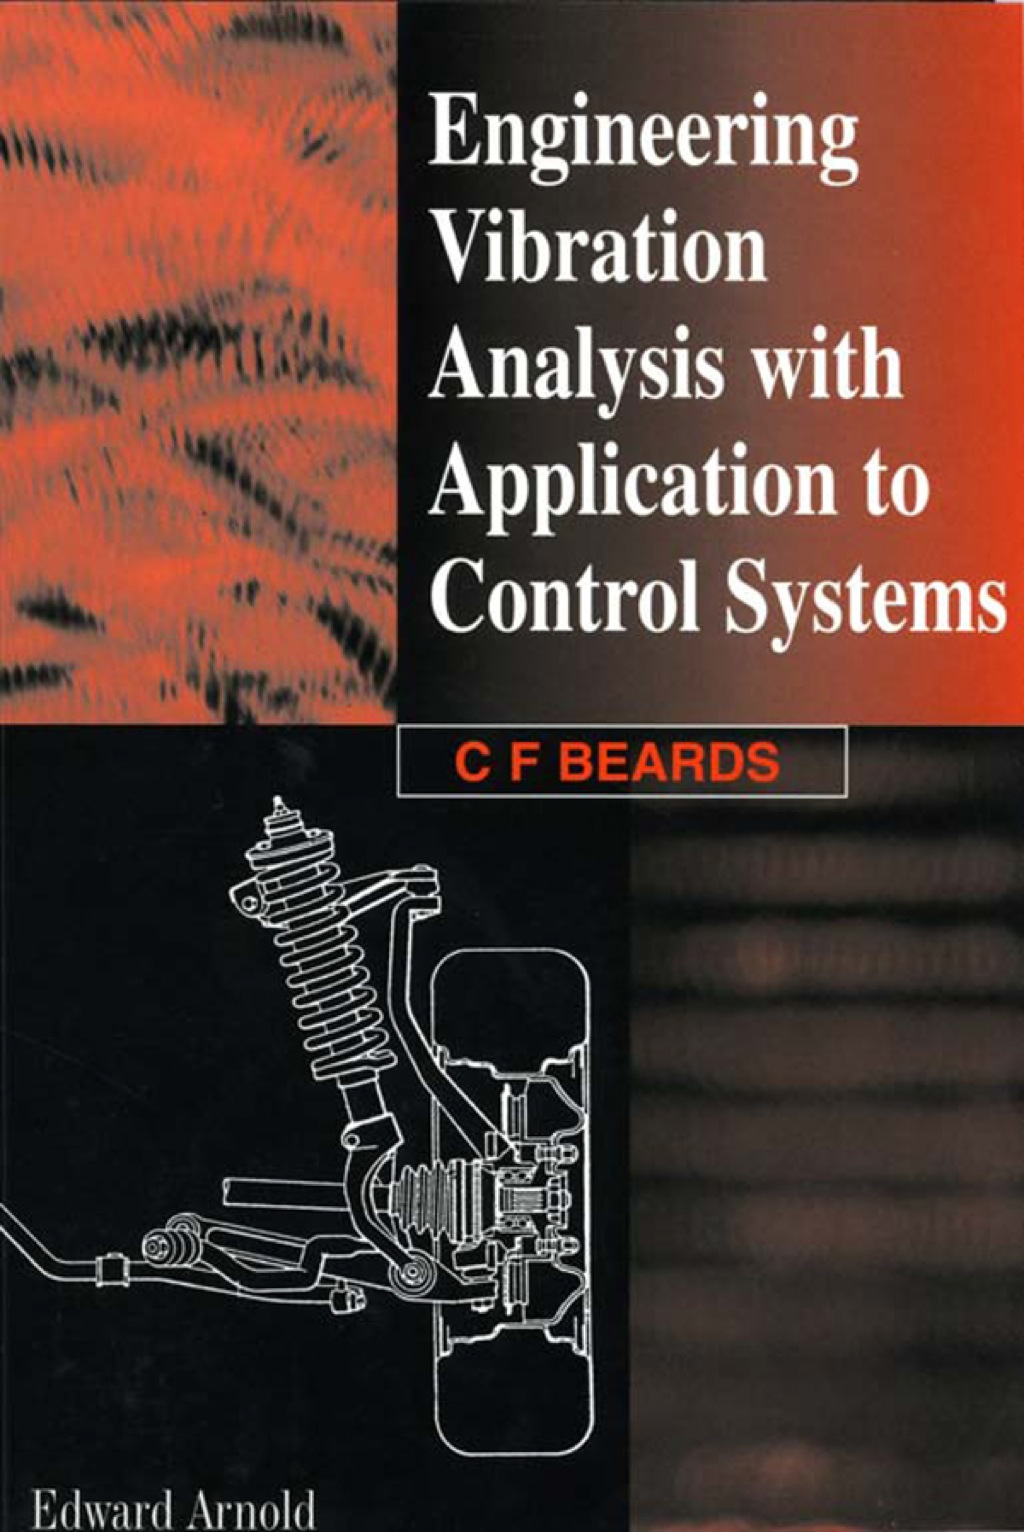 Engineering Vibration Analysis with Application to Control Systems (ebook) eBooks